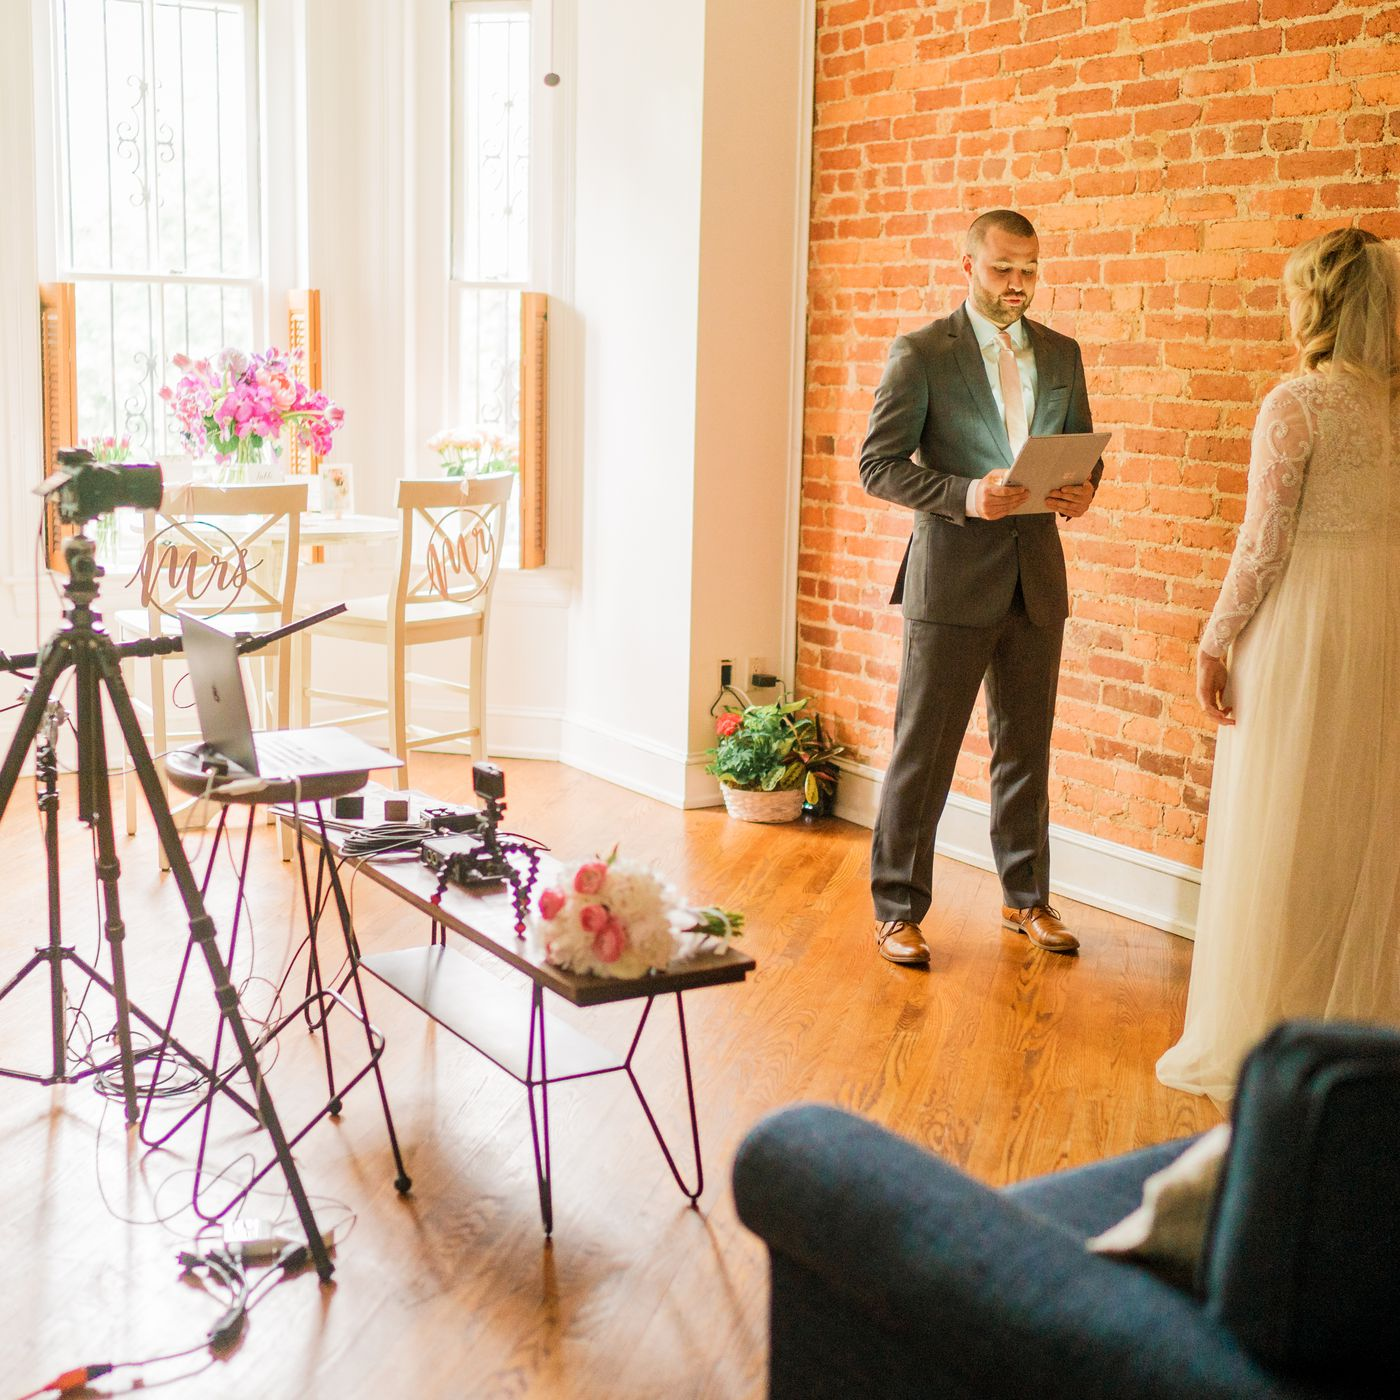 Virtual weddings during quarantine: Couples share their stories - Vox